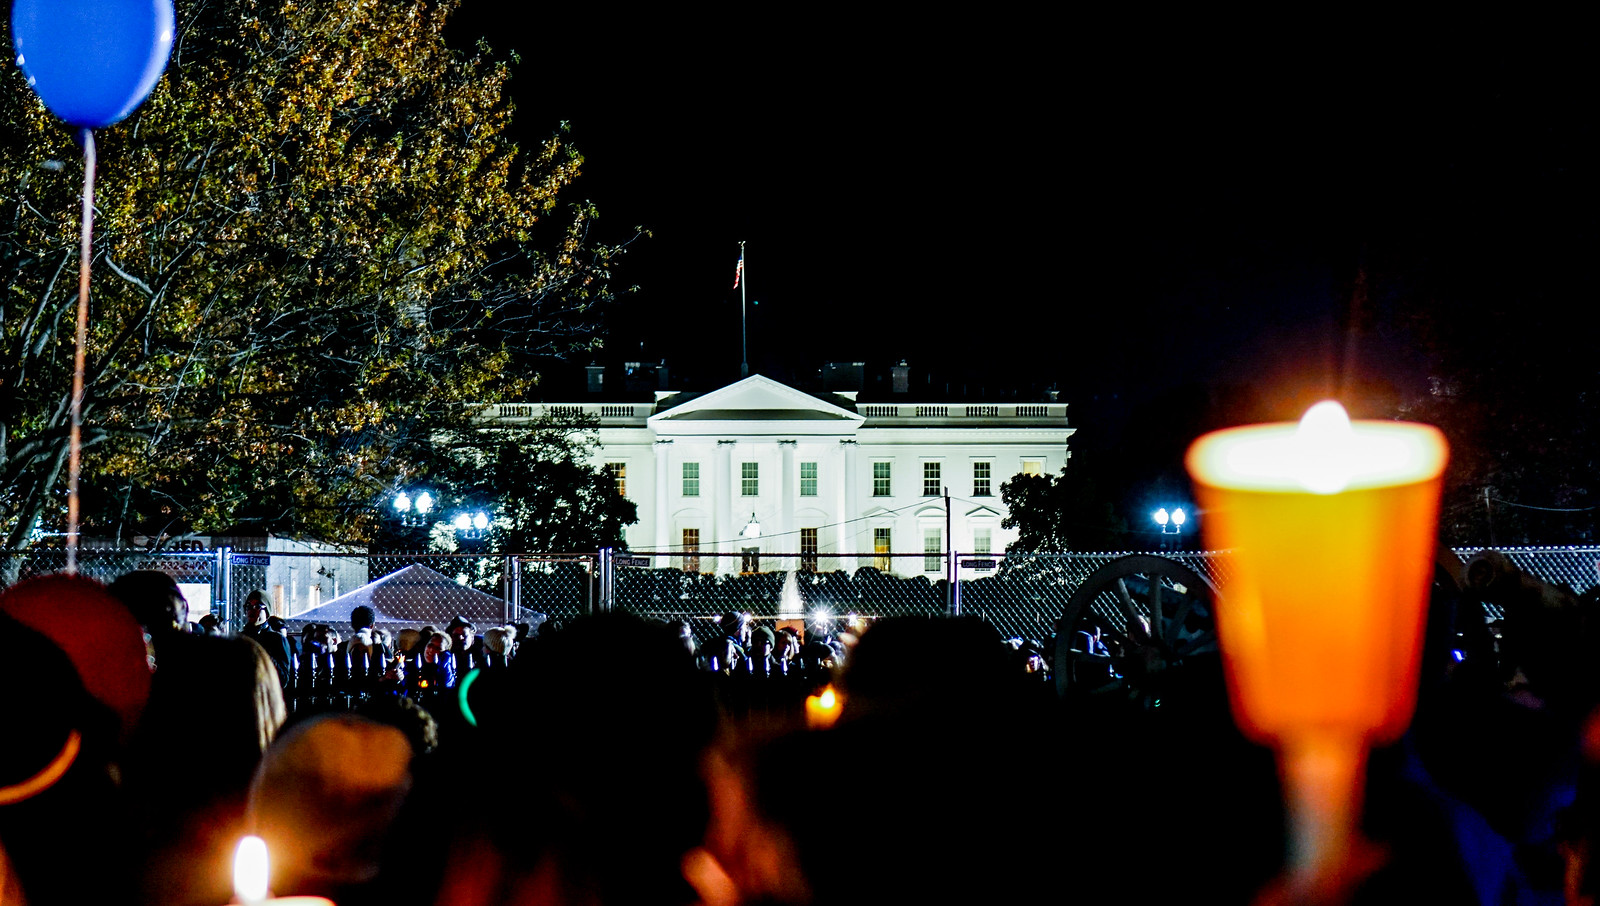 2016.11.12 Anti-Trump Protest Washington, DC USA 08694